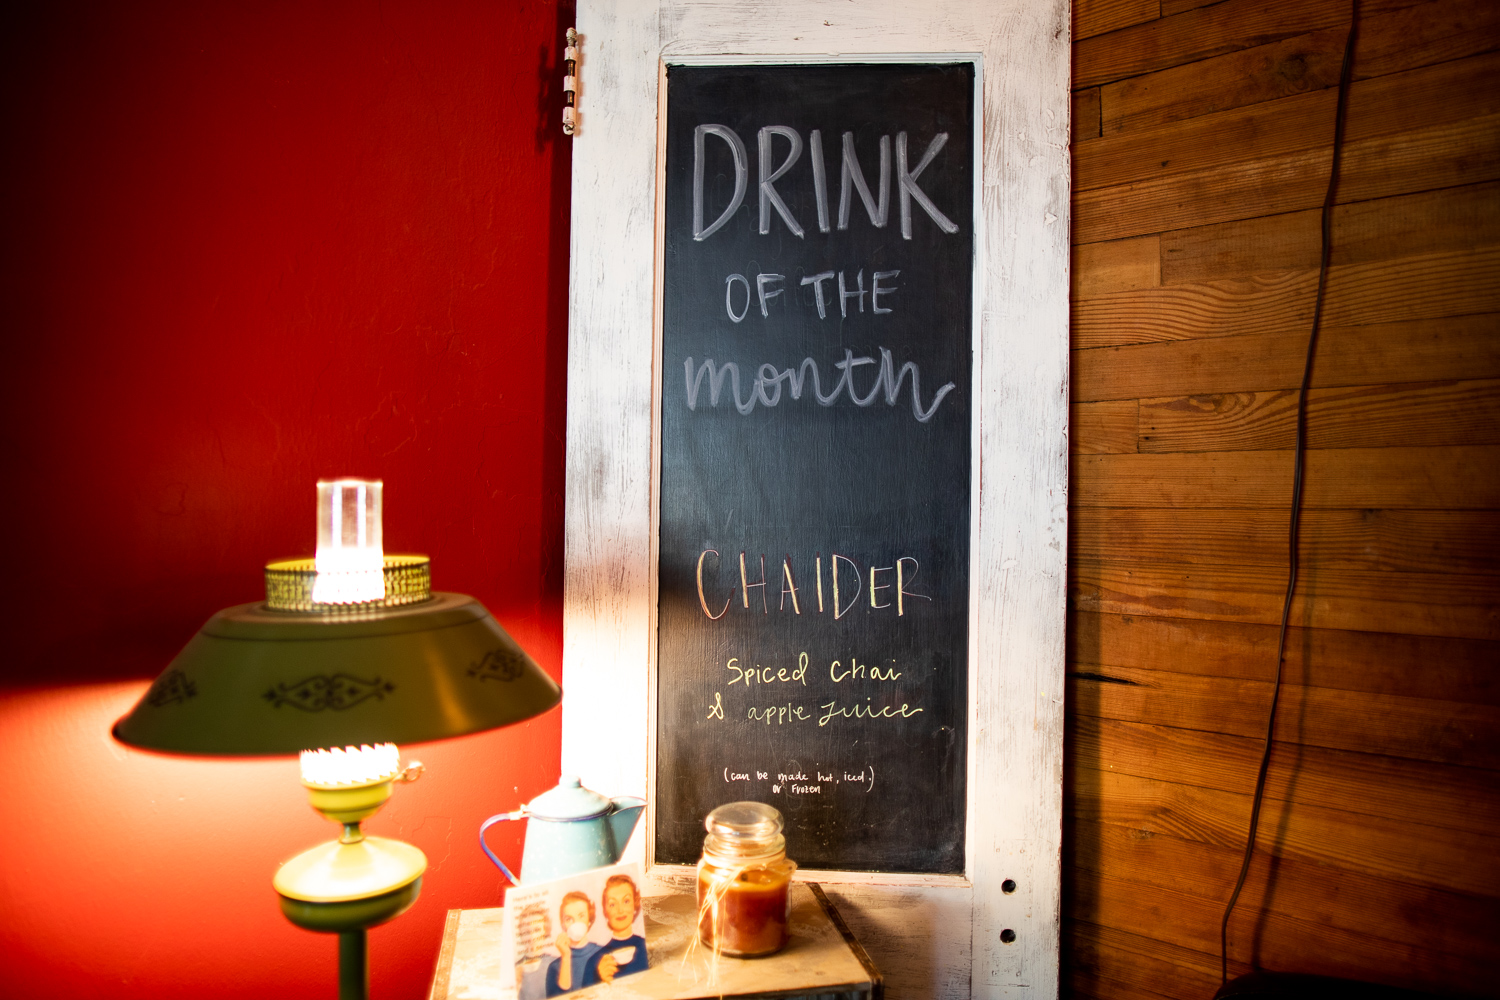 Drink of the month: chaider.